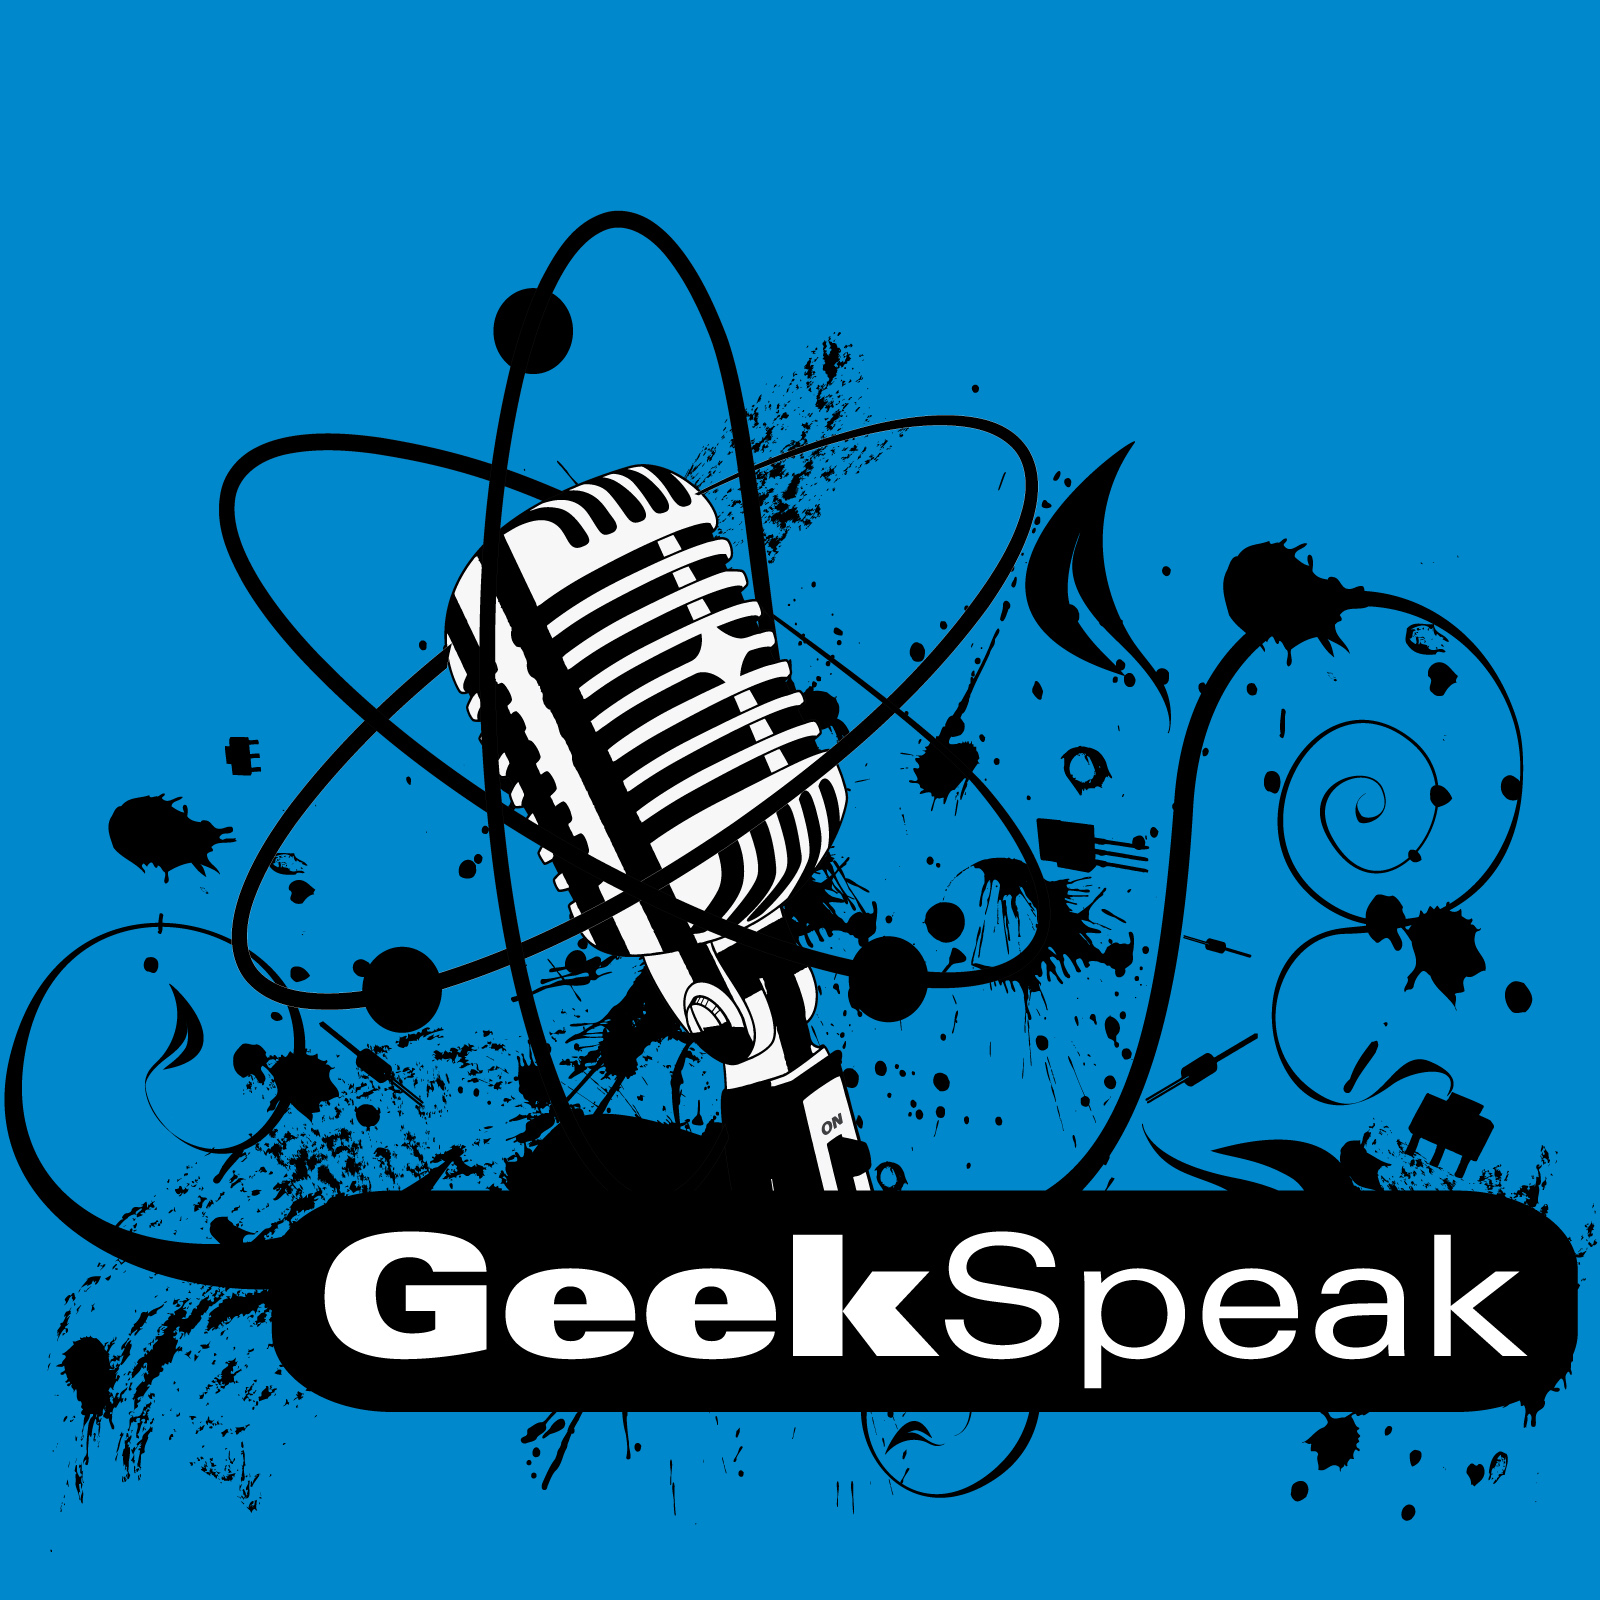 GeekSpeak Live and Community Event